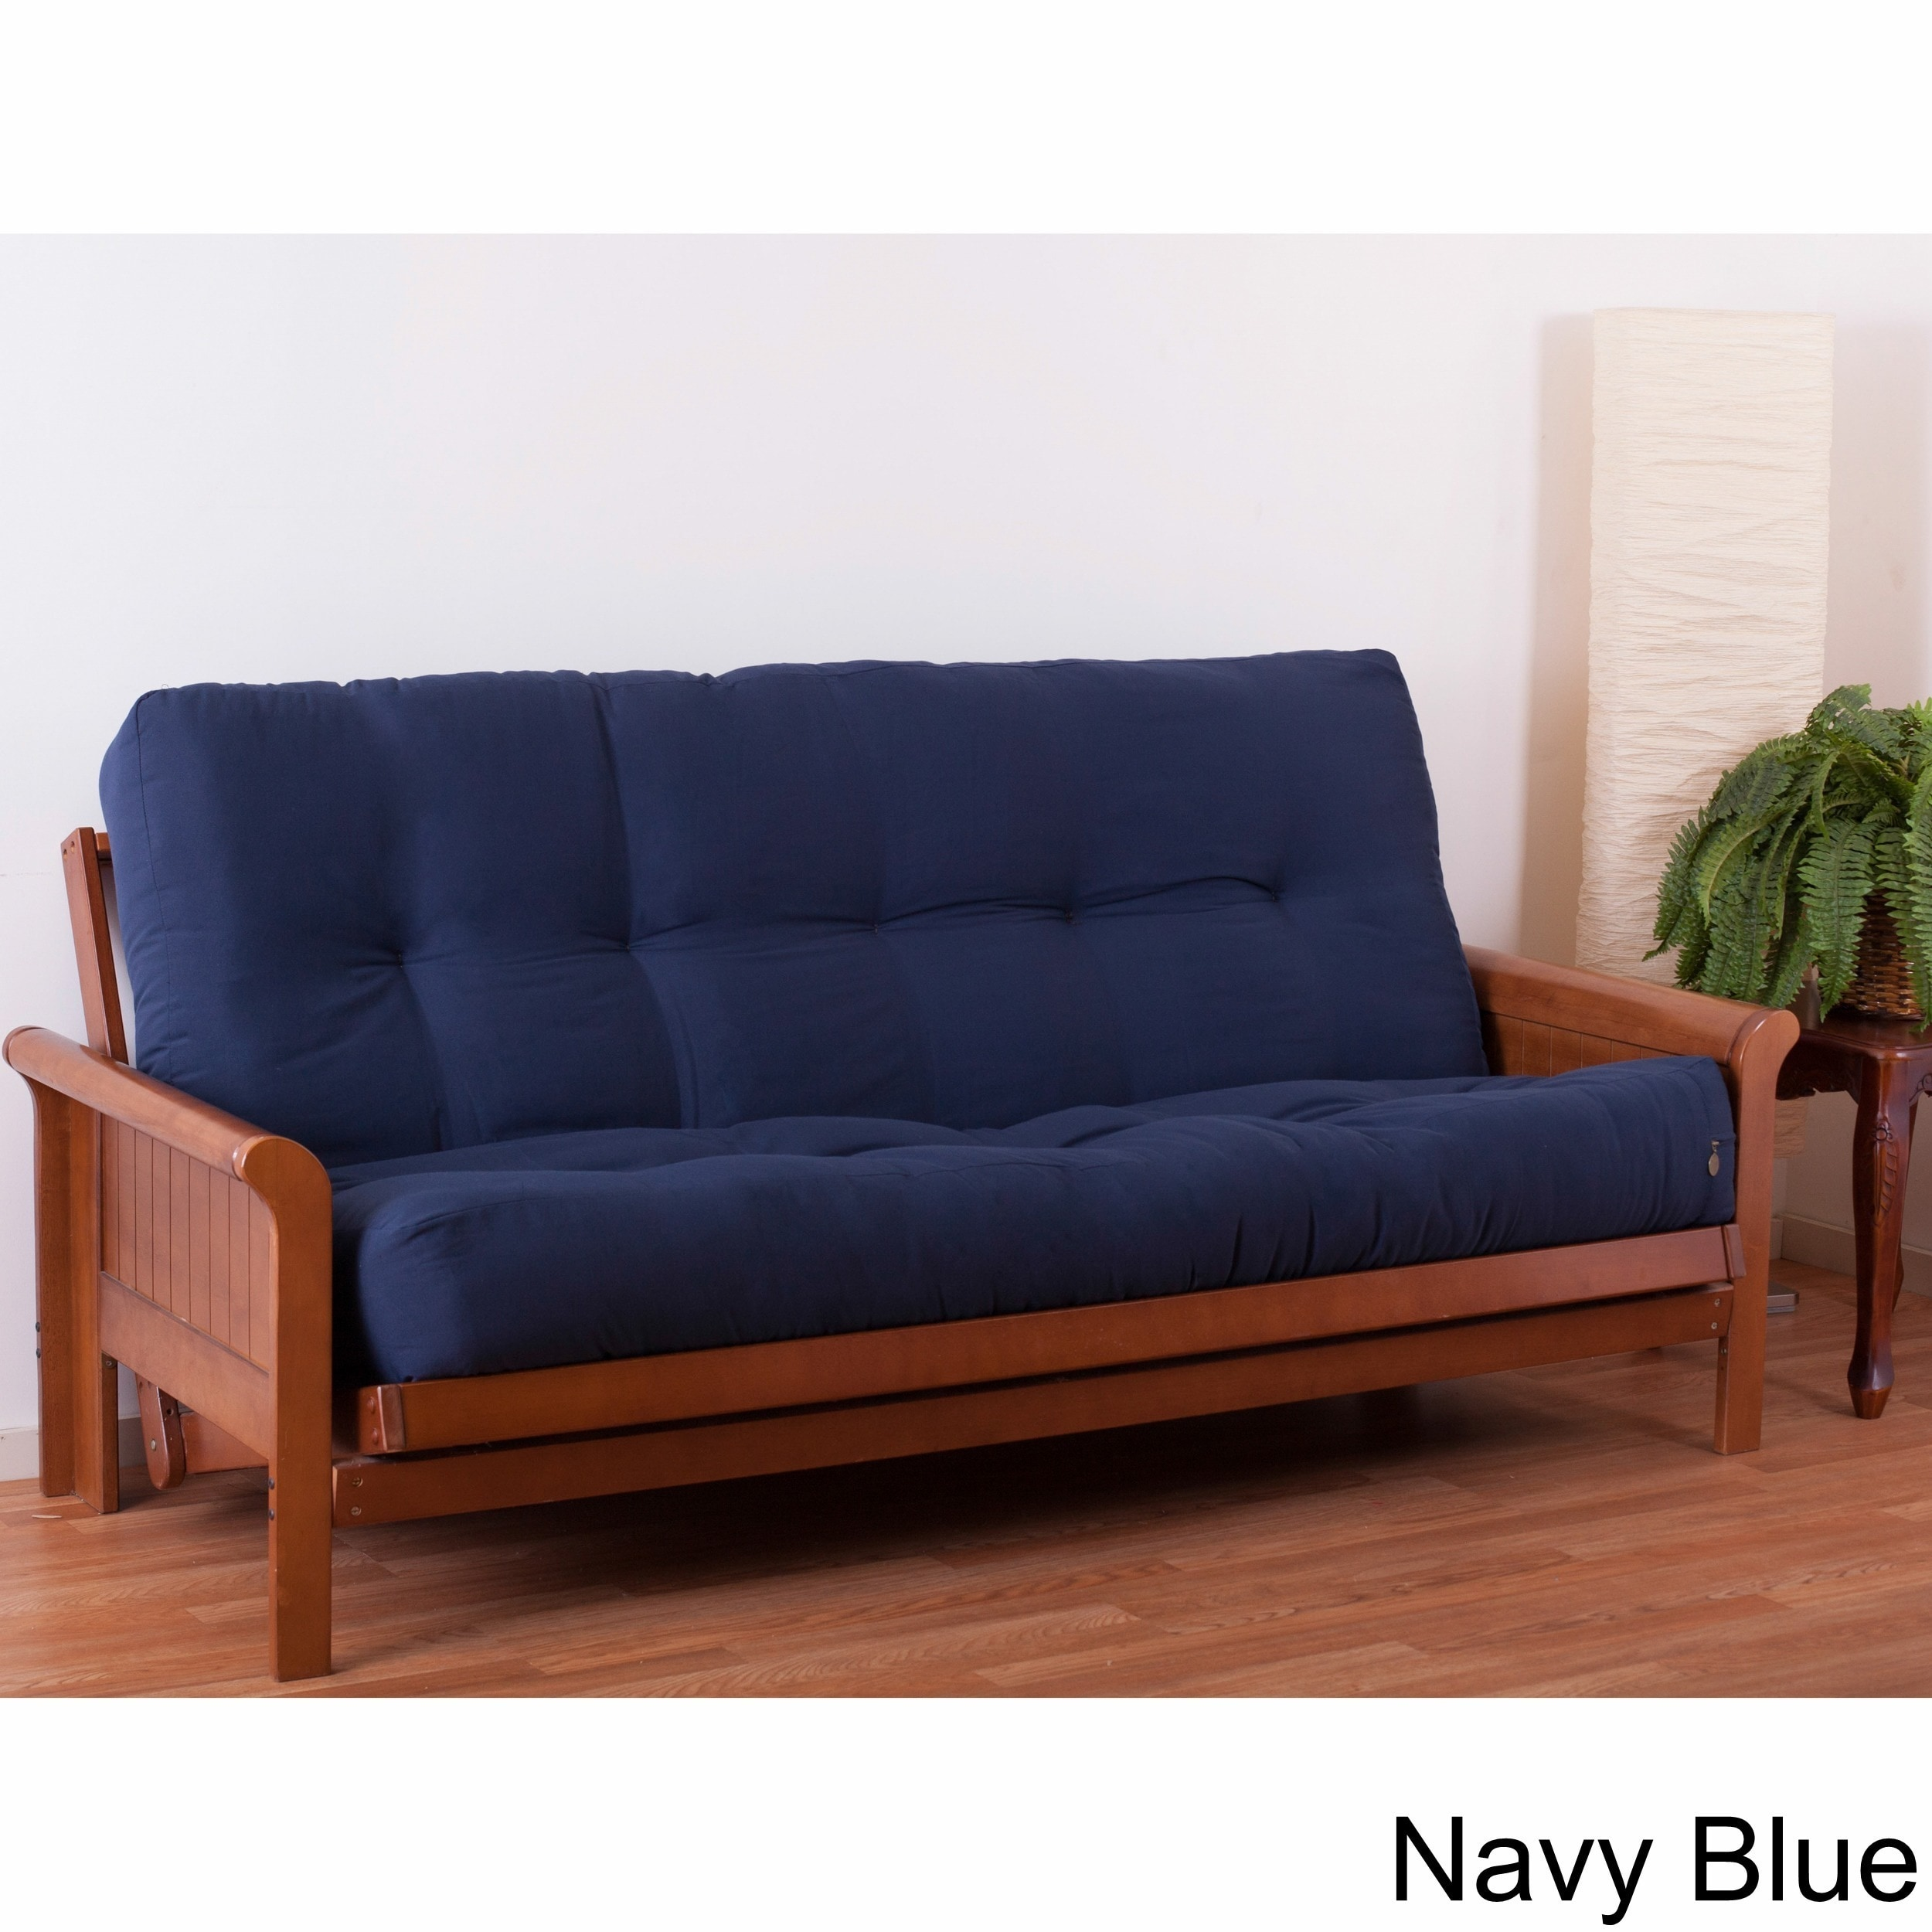 sleeper yellow bed couch sectional corner hall long futons full leather cheap thin table sofa extra sofas size beds futon of small